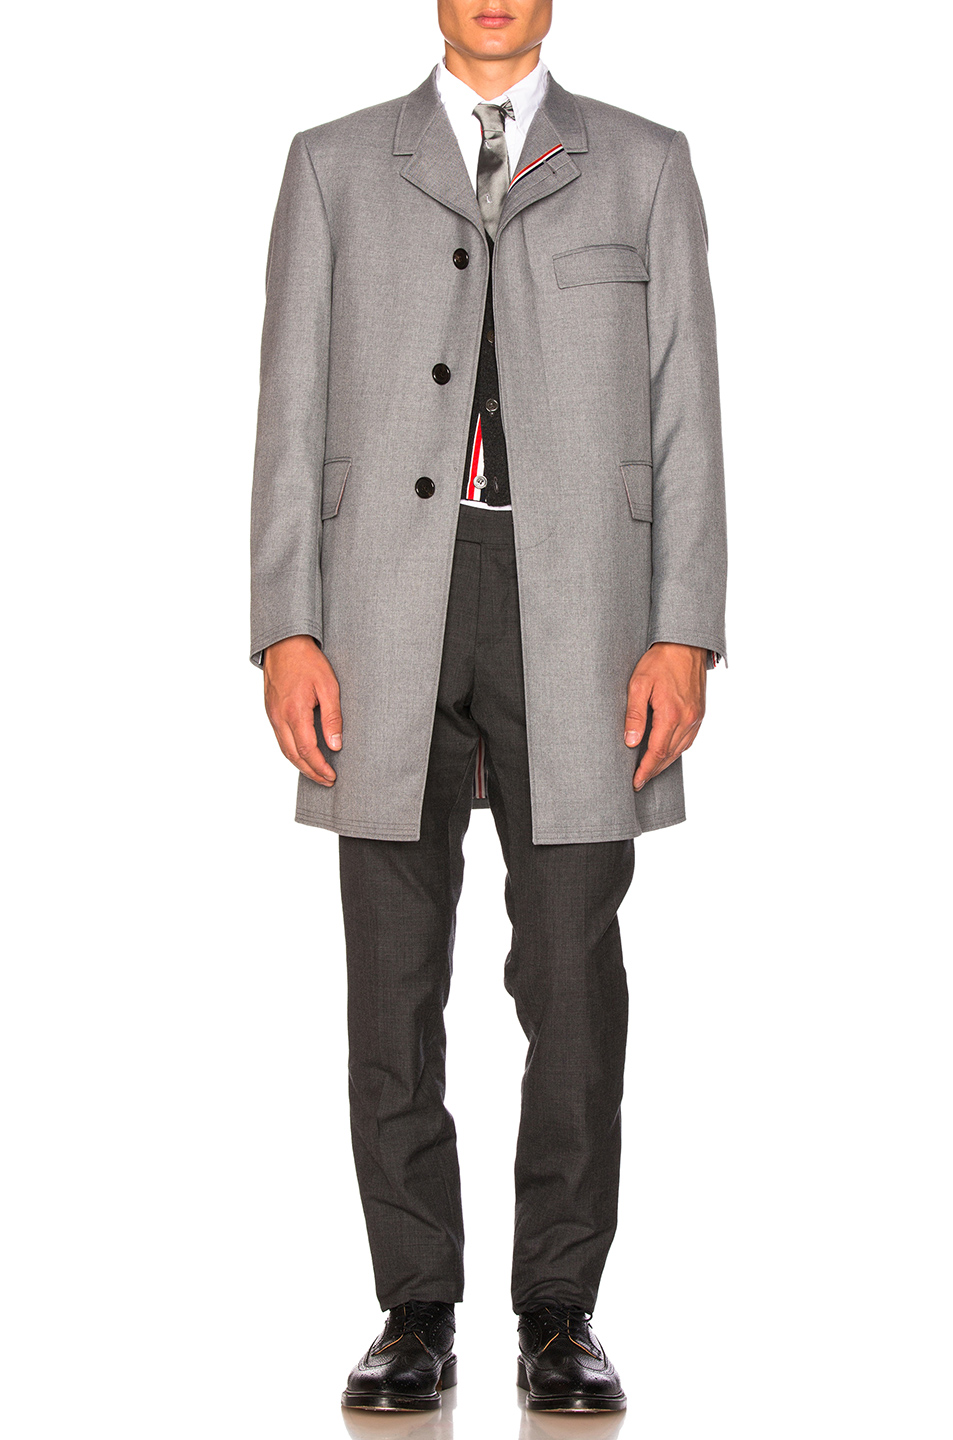 Thom Browne Classic School Uniform Twill Chesterfield Overcoat in Gray